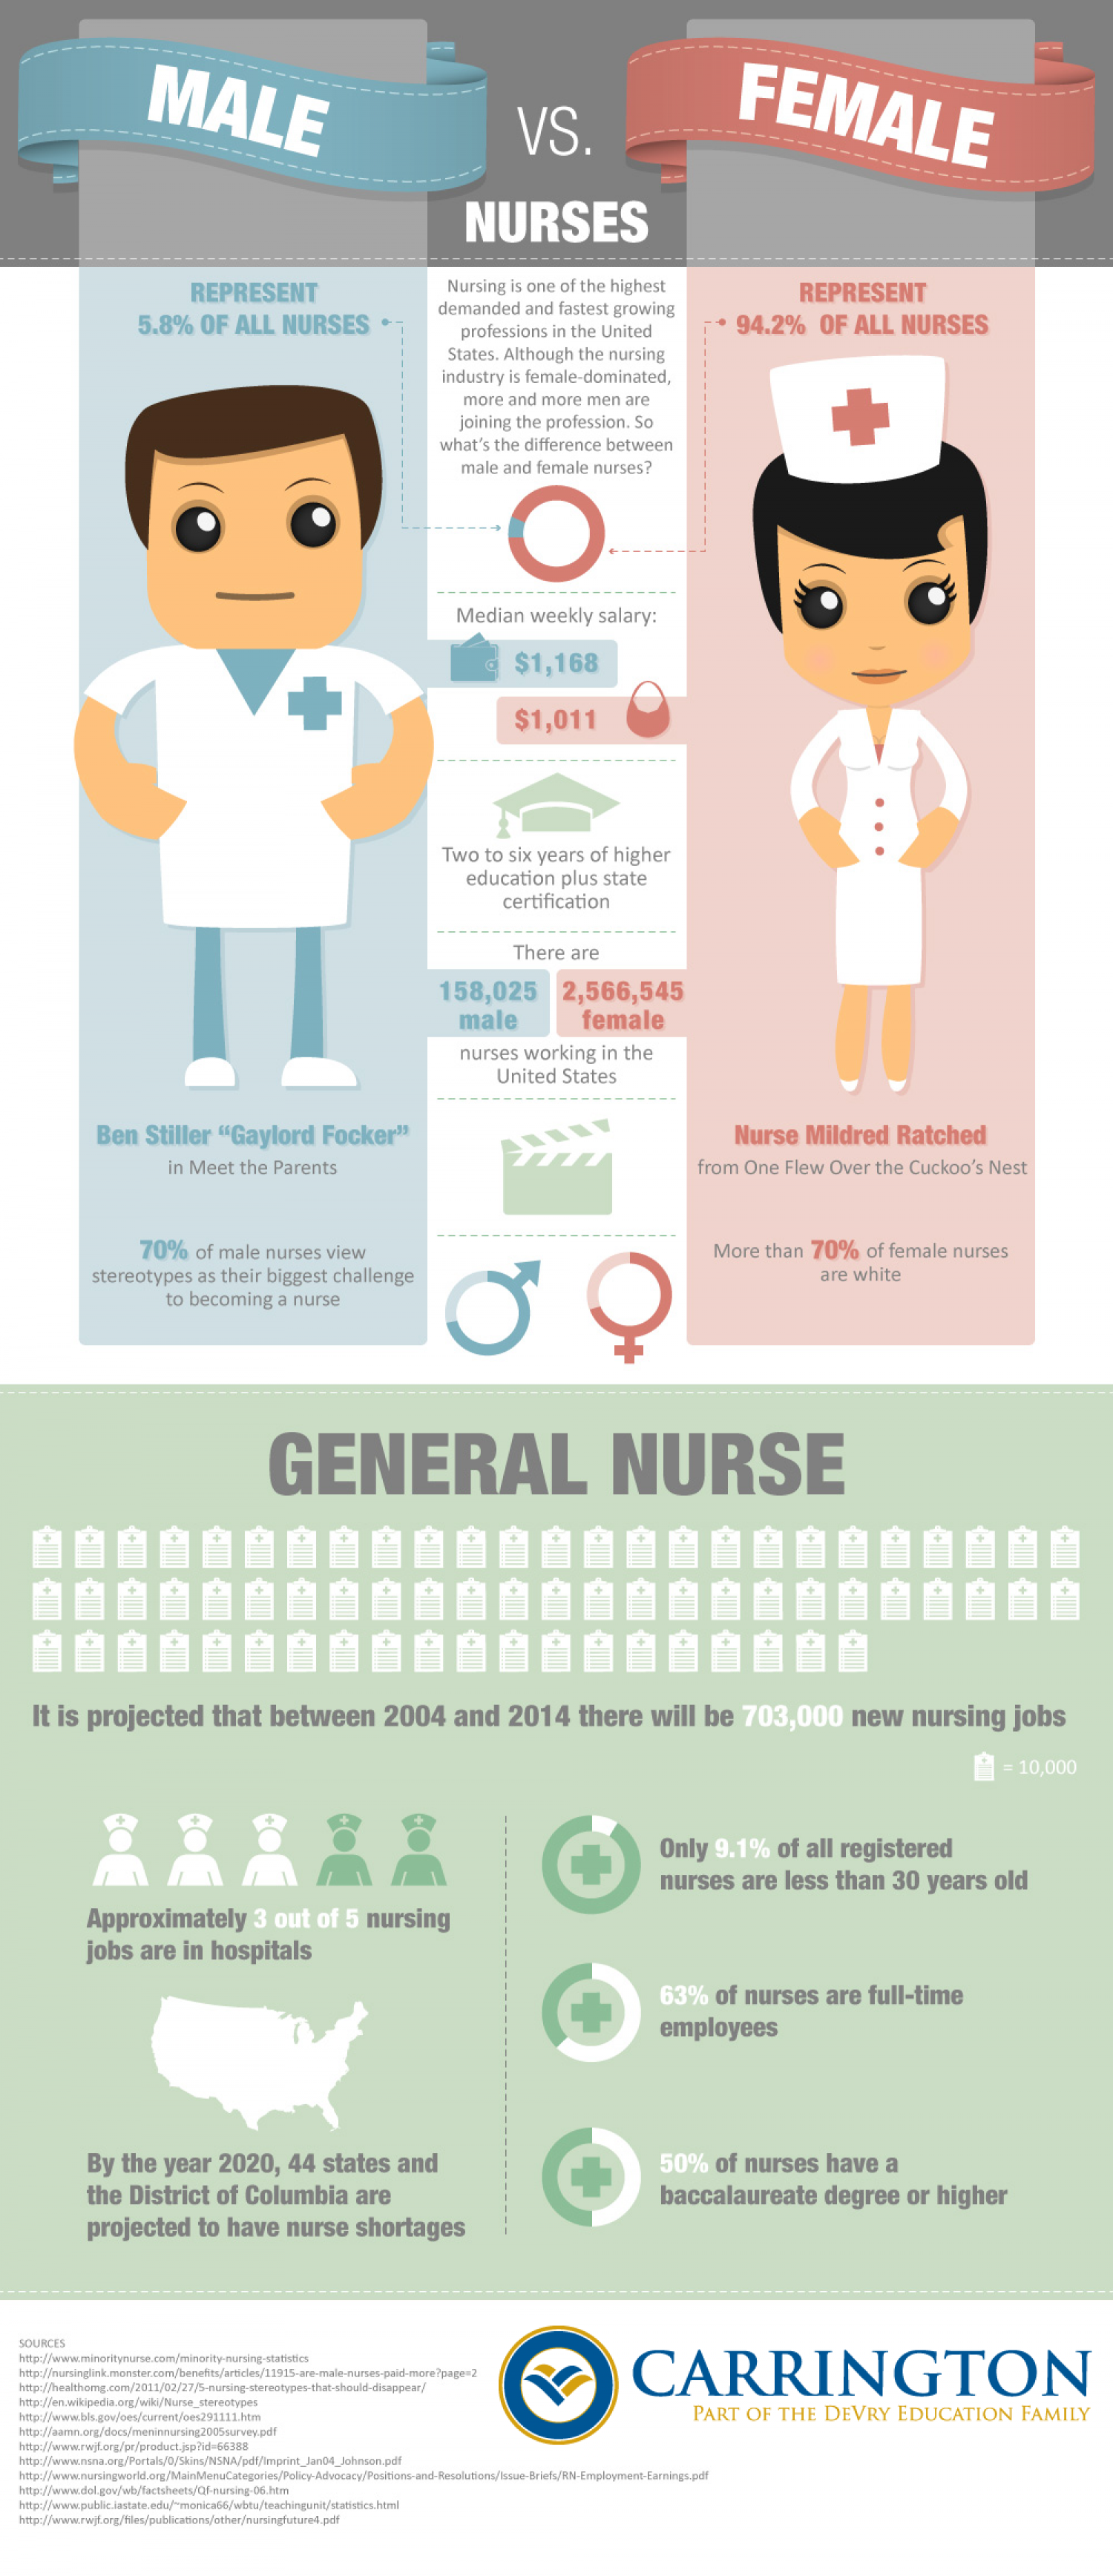 Male vs. Female Nurses Infographic